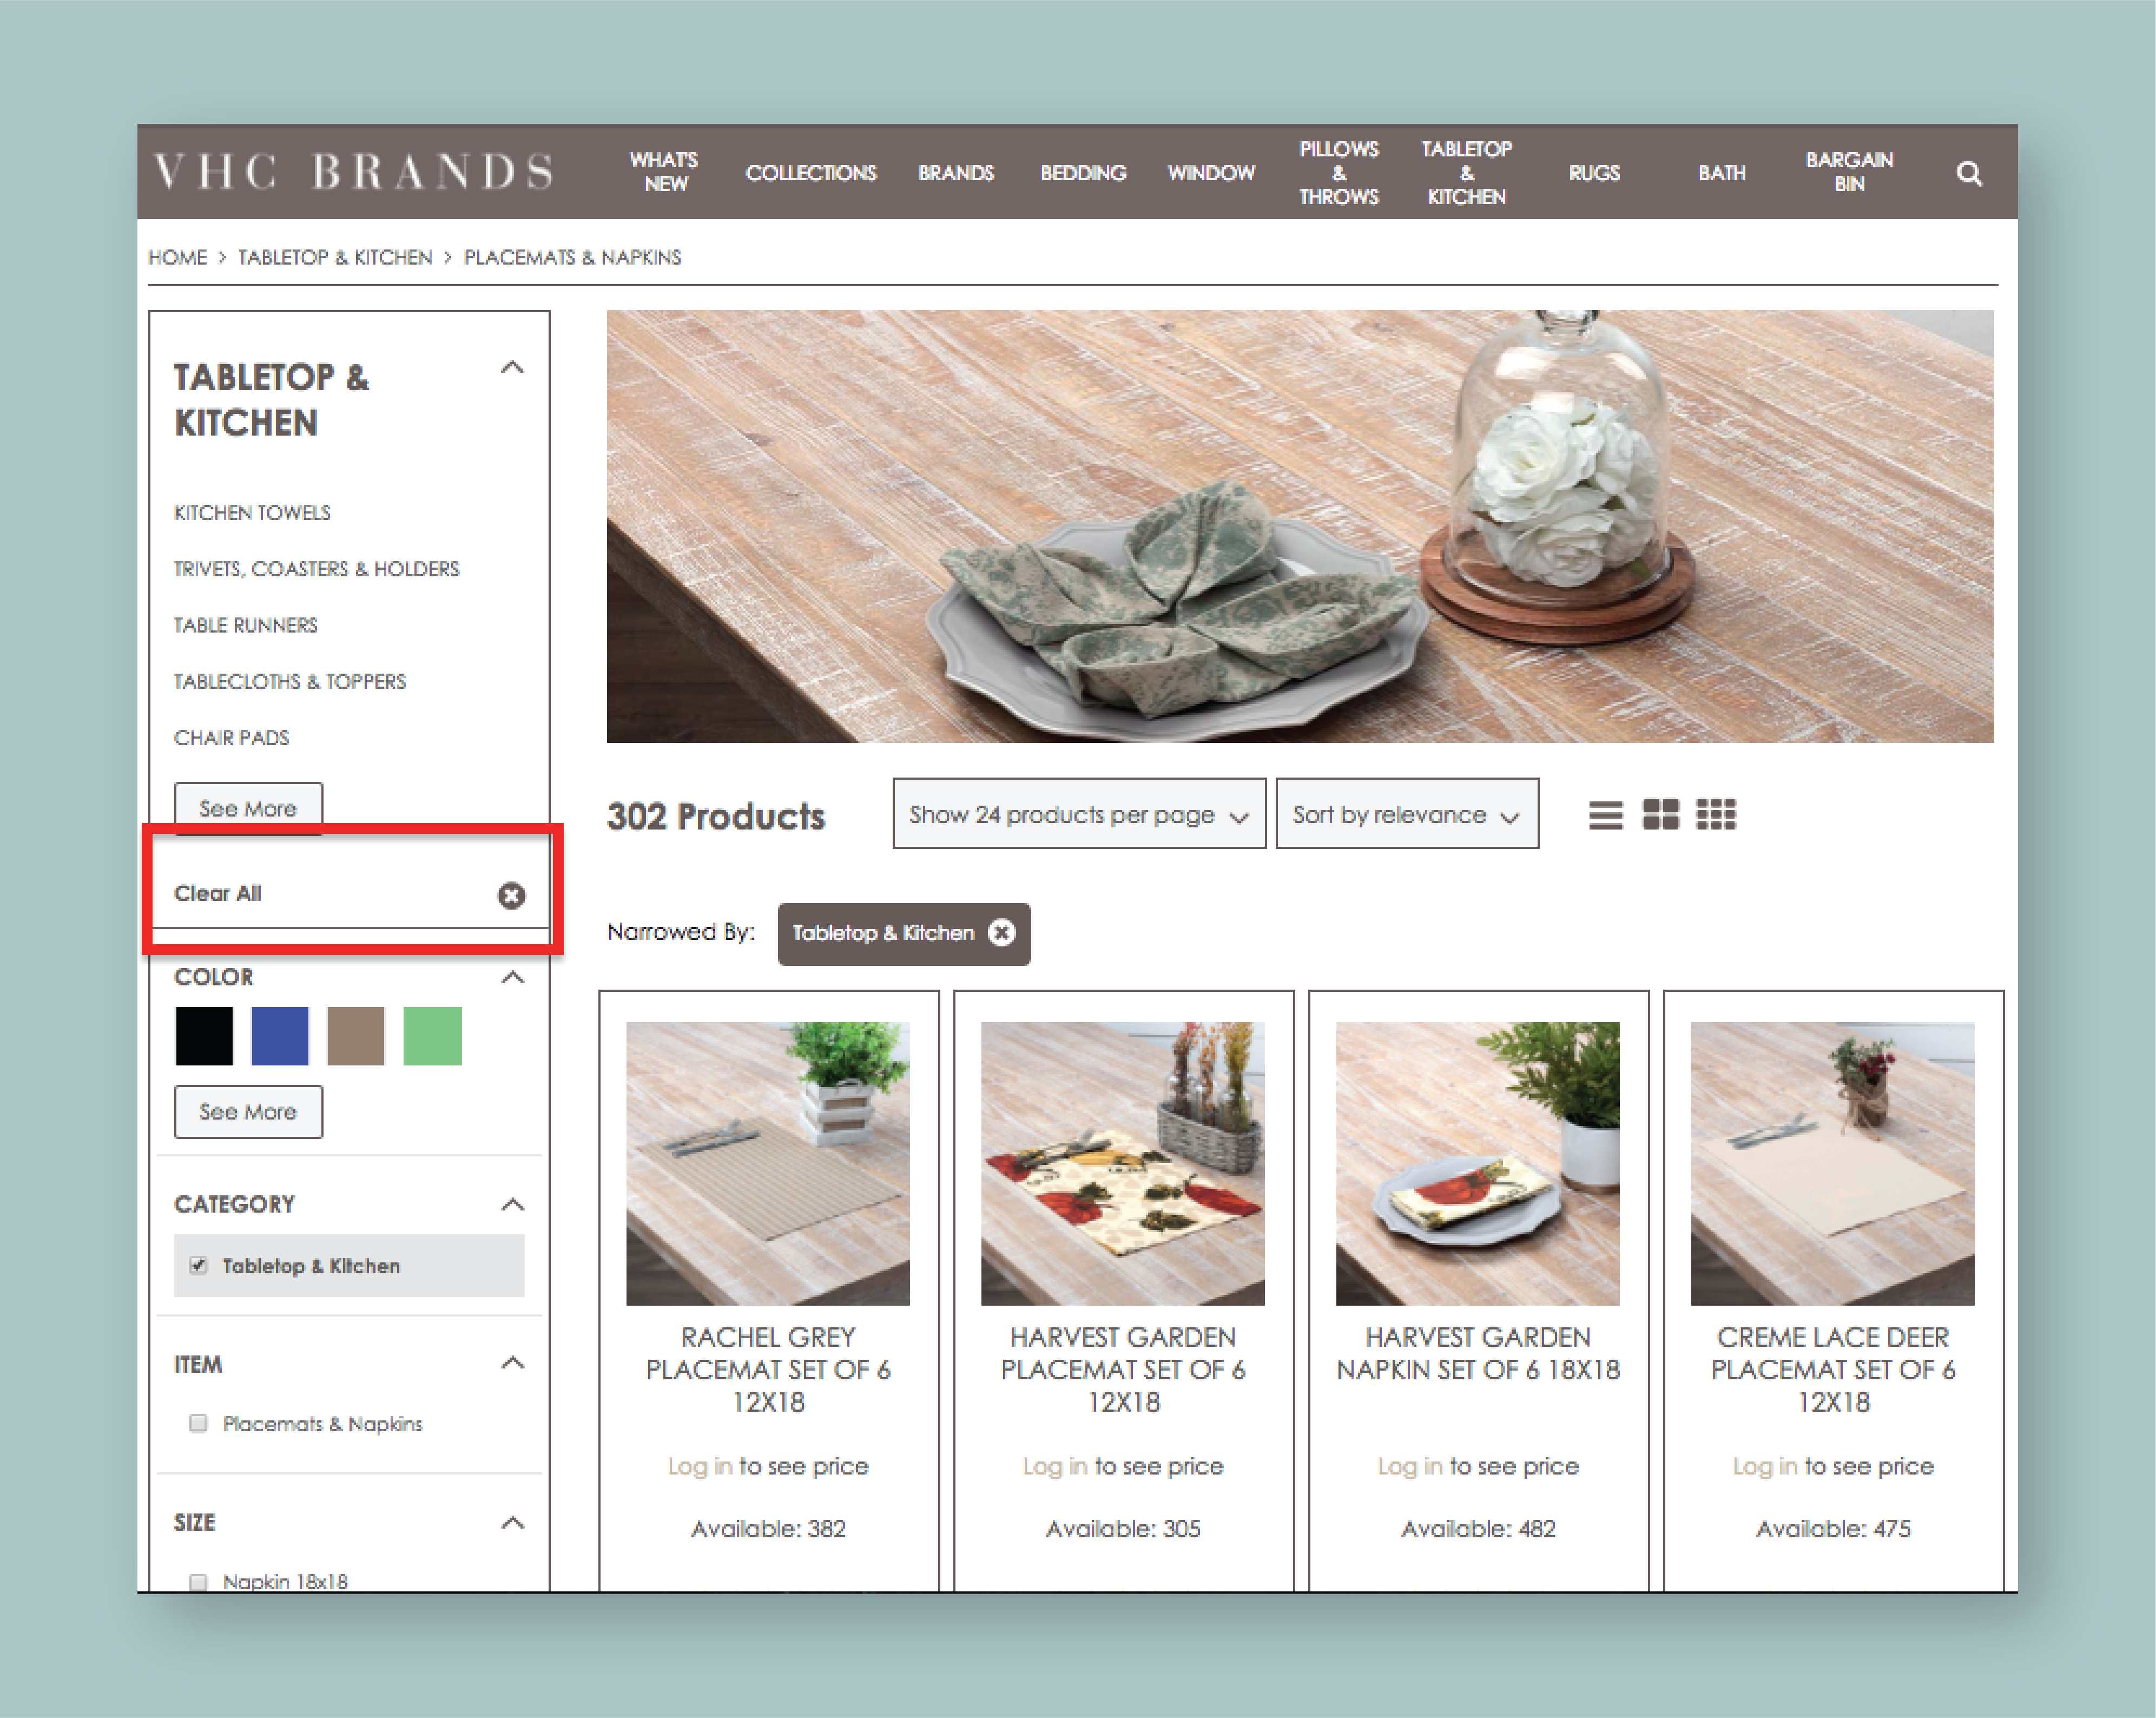 faceted-search-navigation-best-practices-suitecommerce-tavano-team-clear-filter